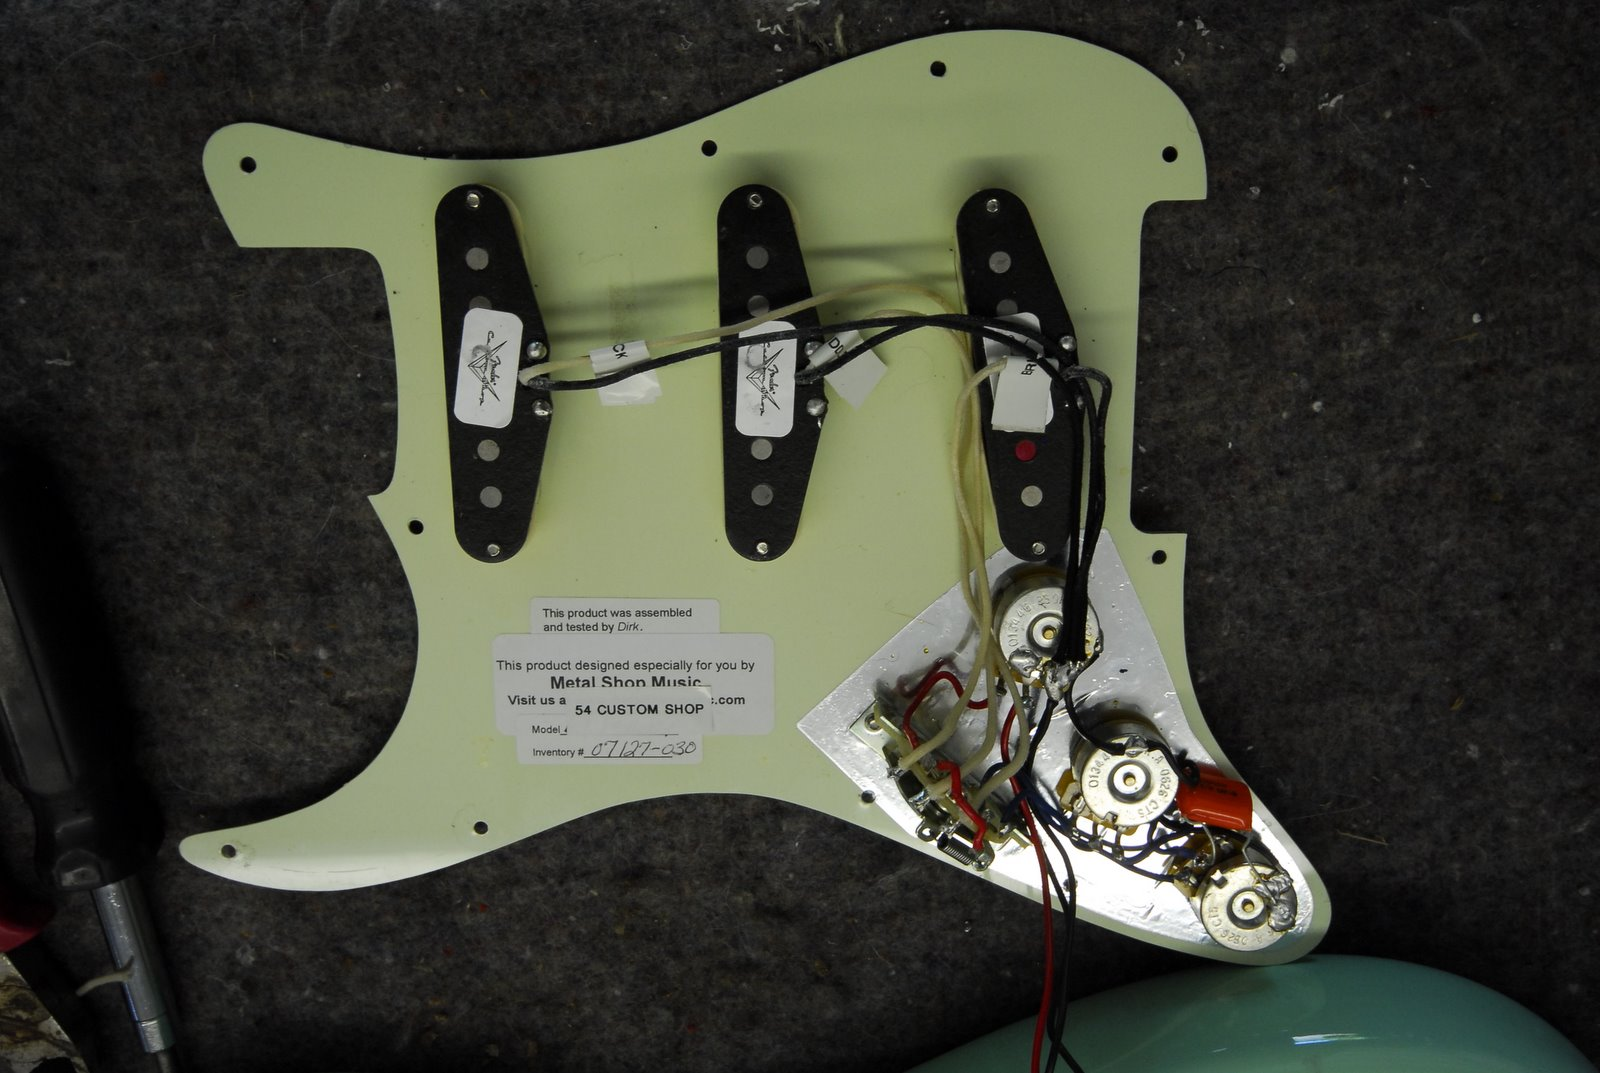 Custom Stratocaster Pickup Upgrade Guitar Wiring Noise At That Time I Had Purchased A Fully Loaded Pickguard With Fender 69 Shop Pickups But Truthfully The Sound Never Really Worked